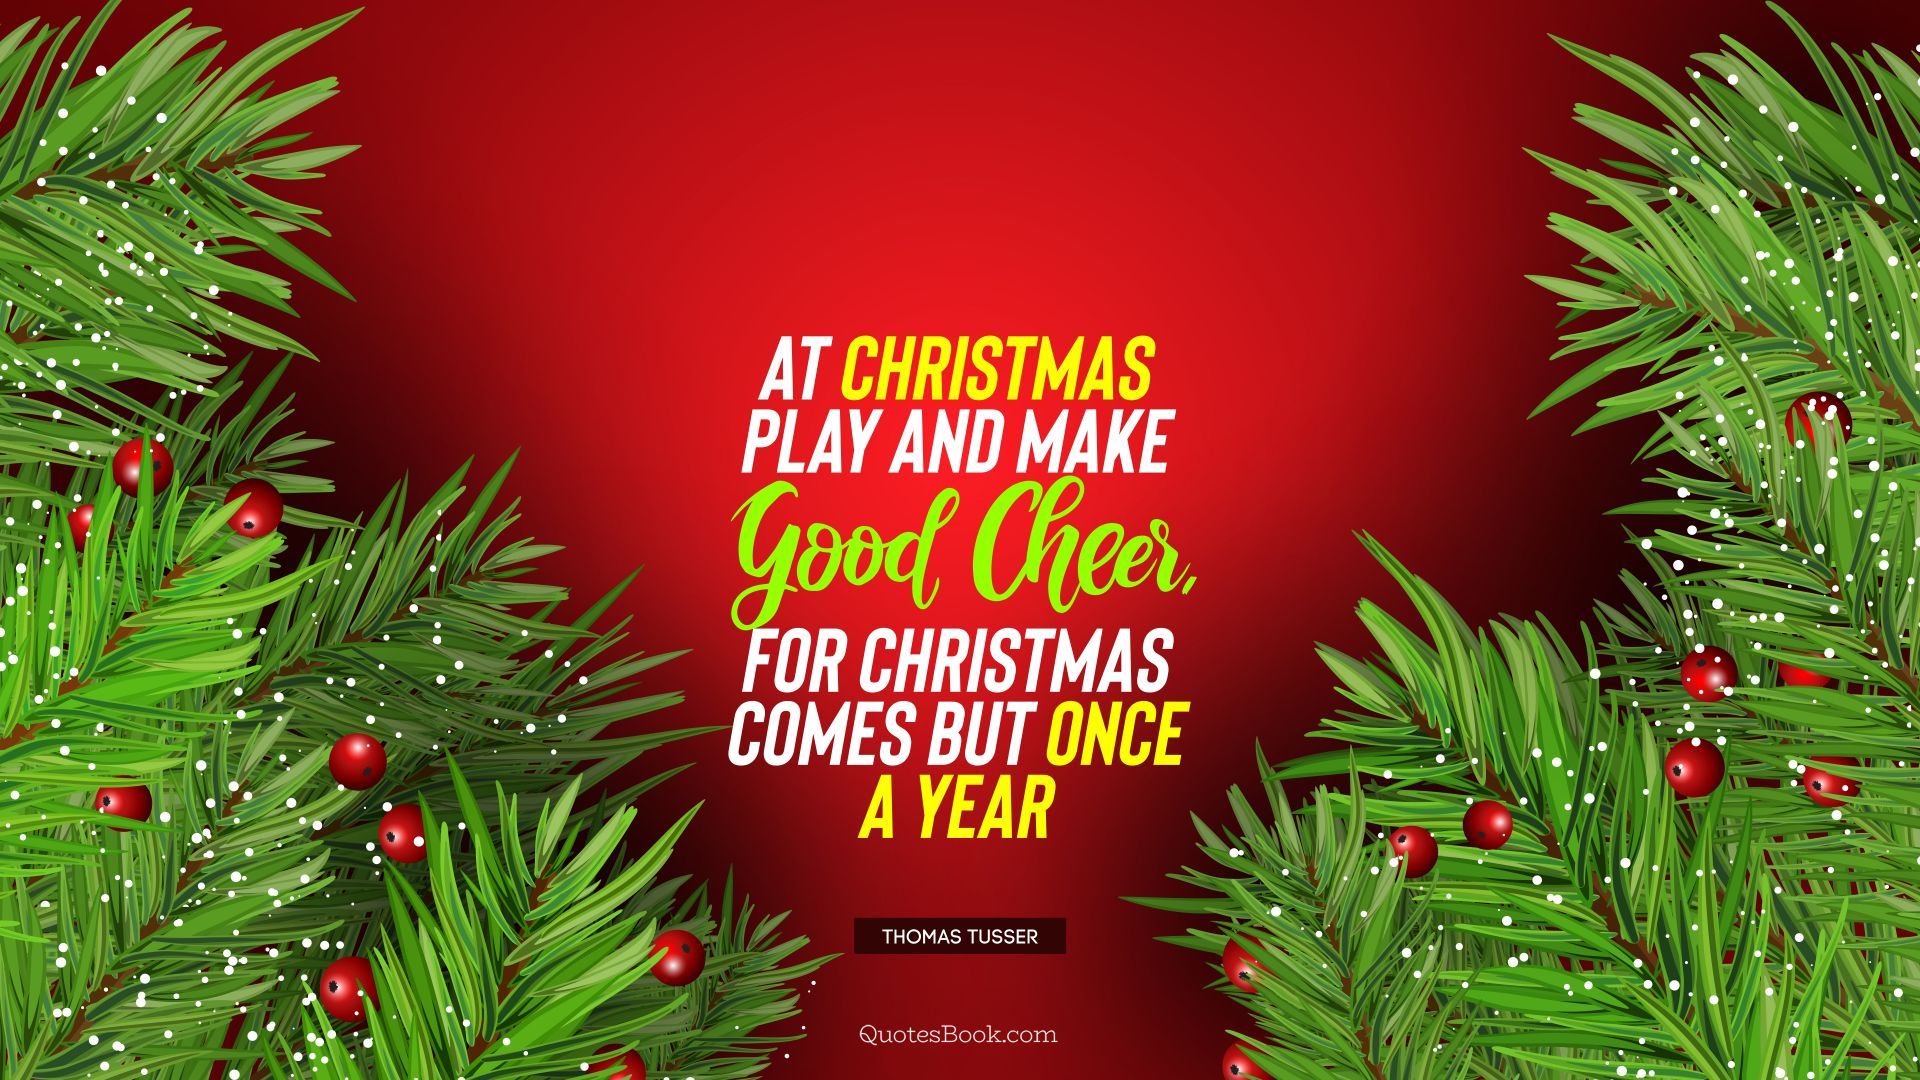 At Christmas play and make good cheer, for Christmas comes but once a year. - Quote by Thomas Tusser